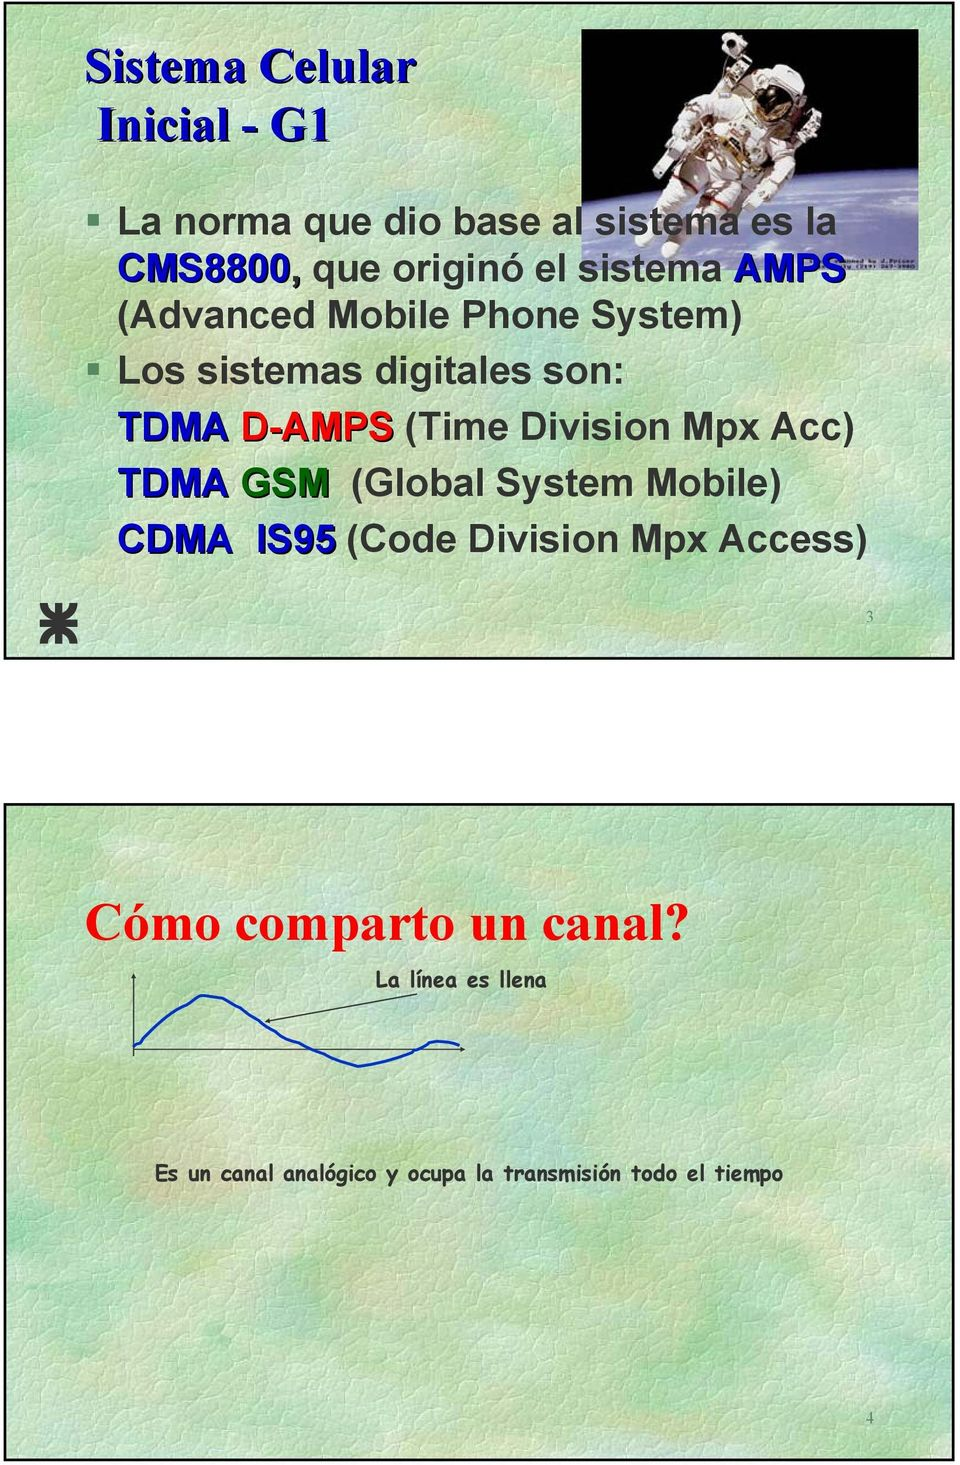 Division Mpx Acc) TDMA GSM (Global System Mobile) CDMA IS95 (Code Division Mpx Access) 3 Cómo